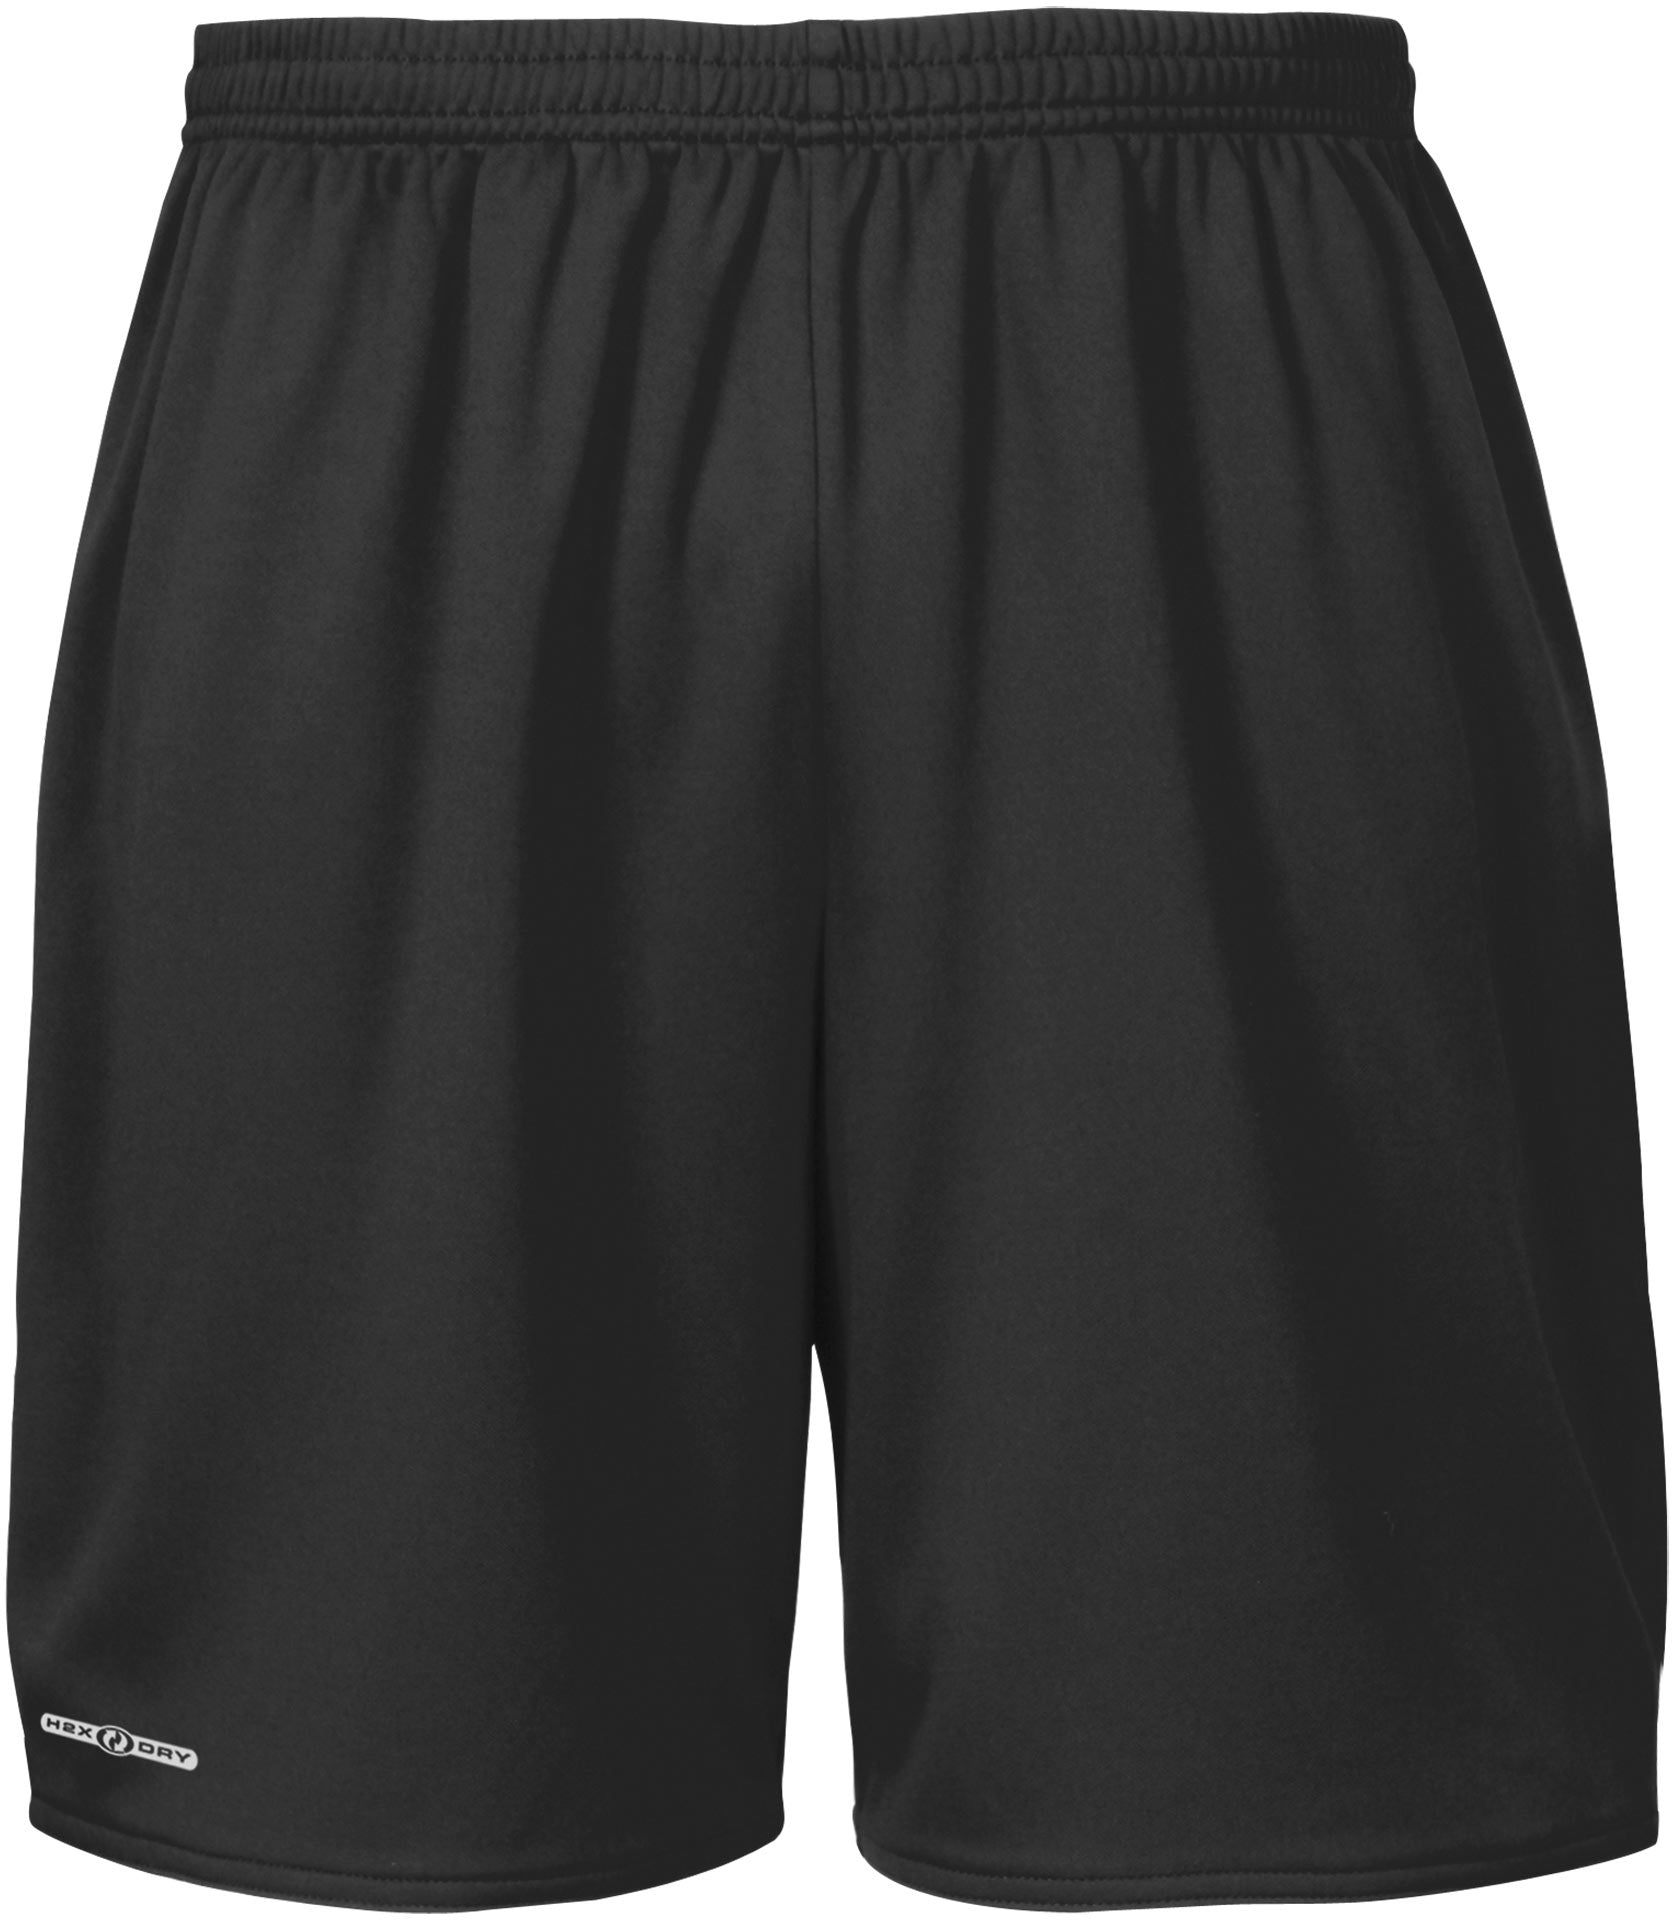 STORMTECH YOUTH H2X-DRY® SHORTS